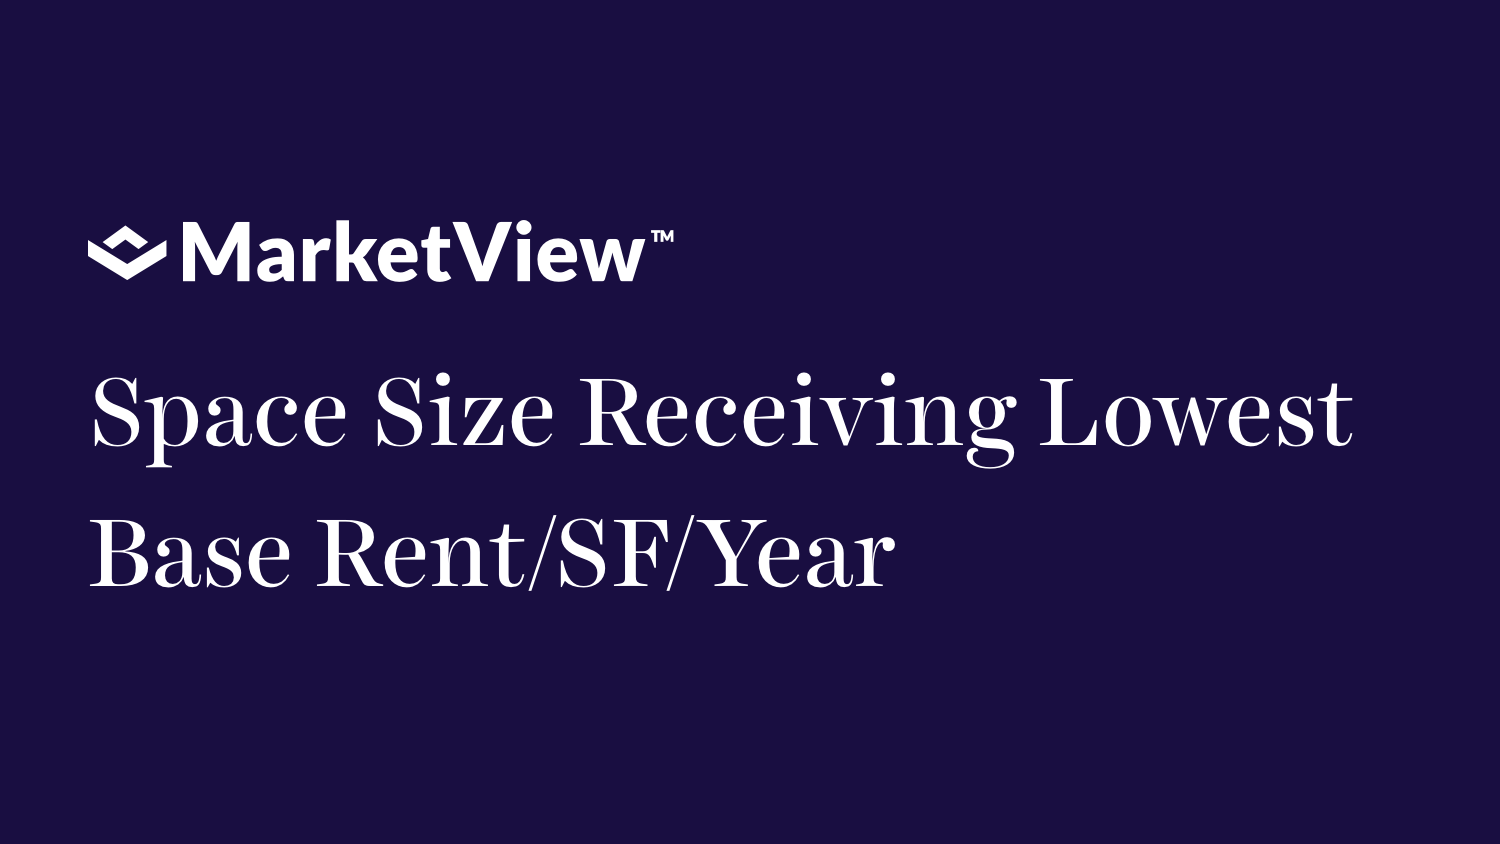 Space Size Receiving Lowest Base Rent per SF per Year in New York, San Francisco, Houston, London